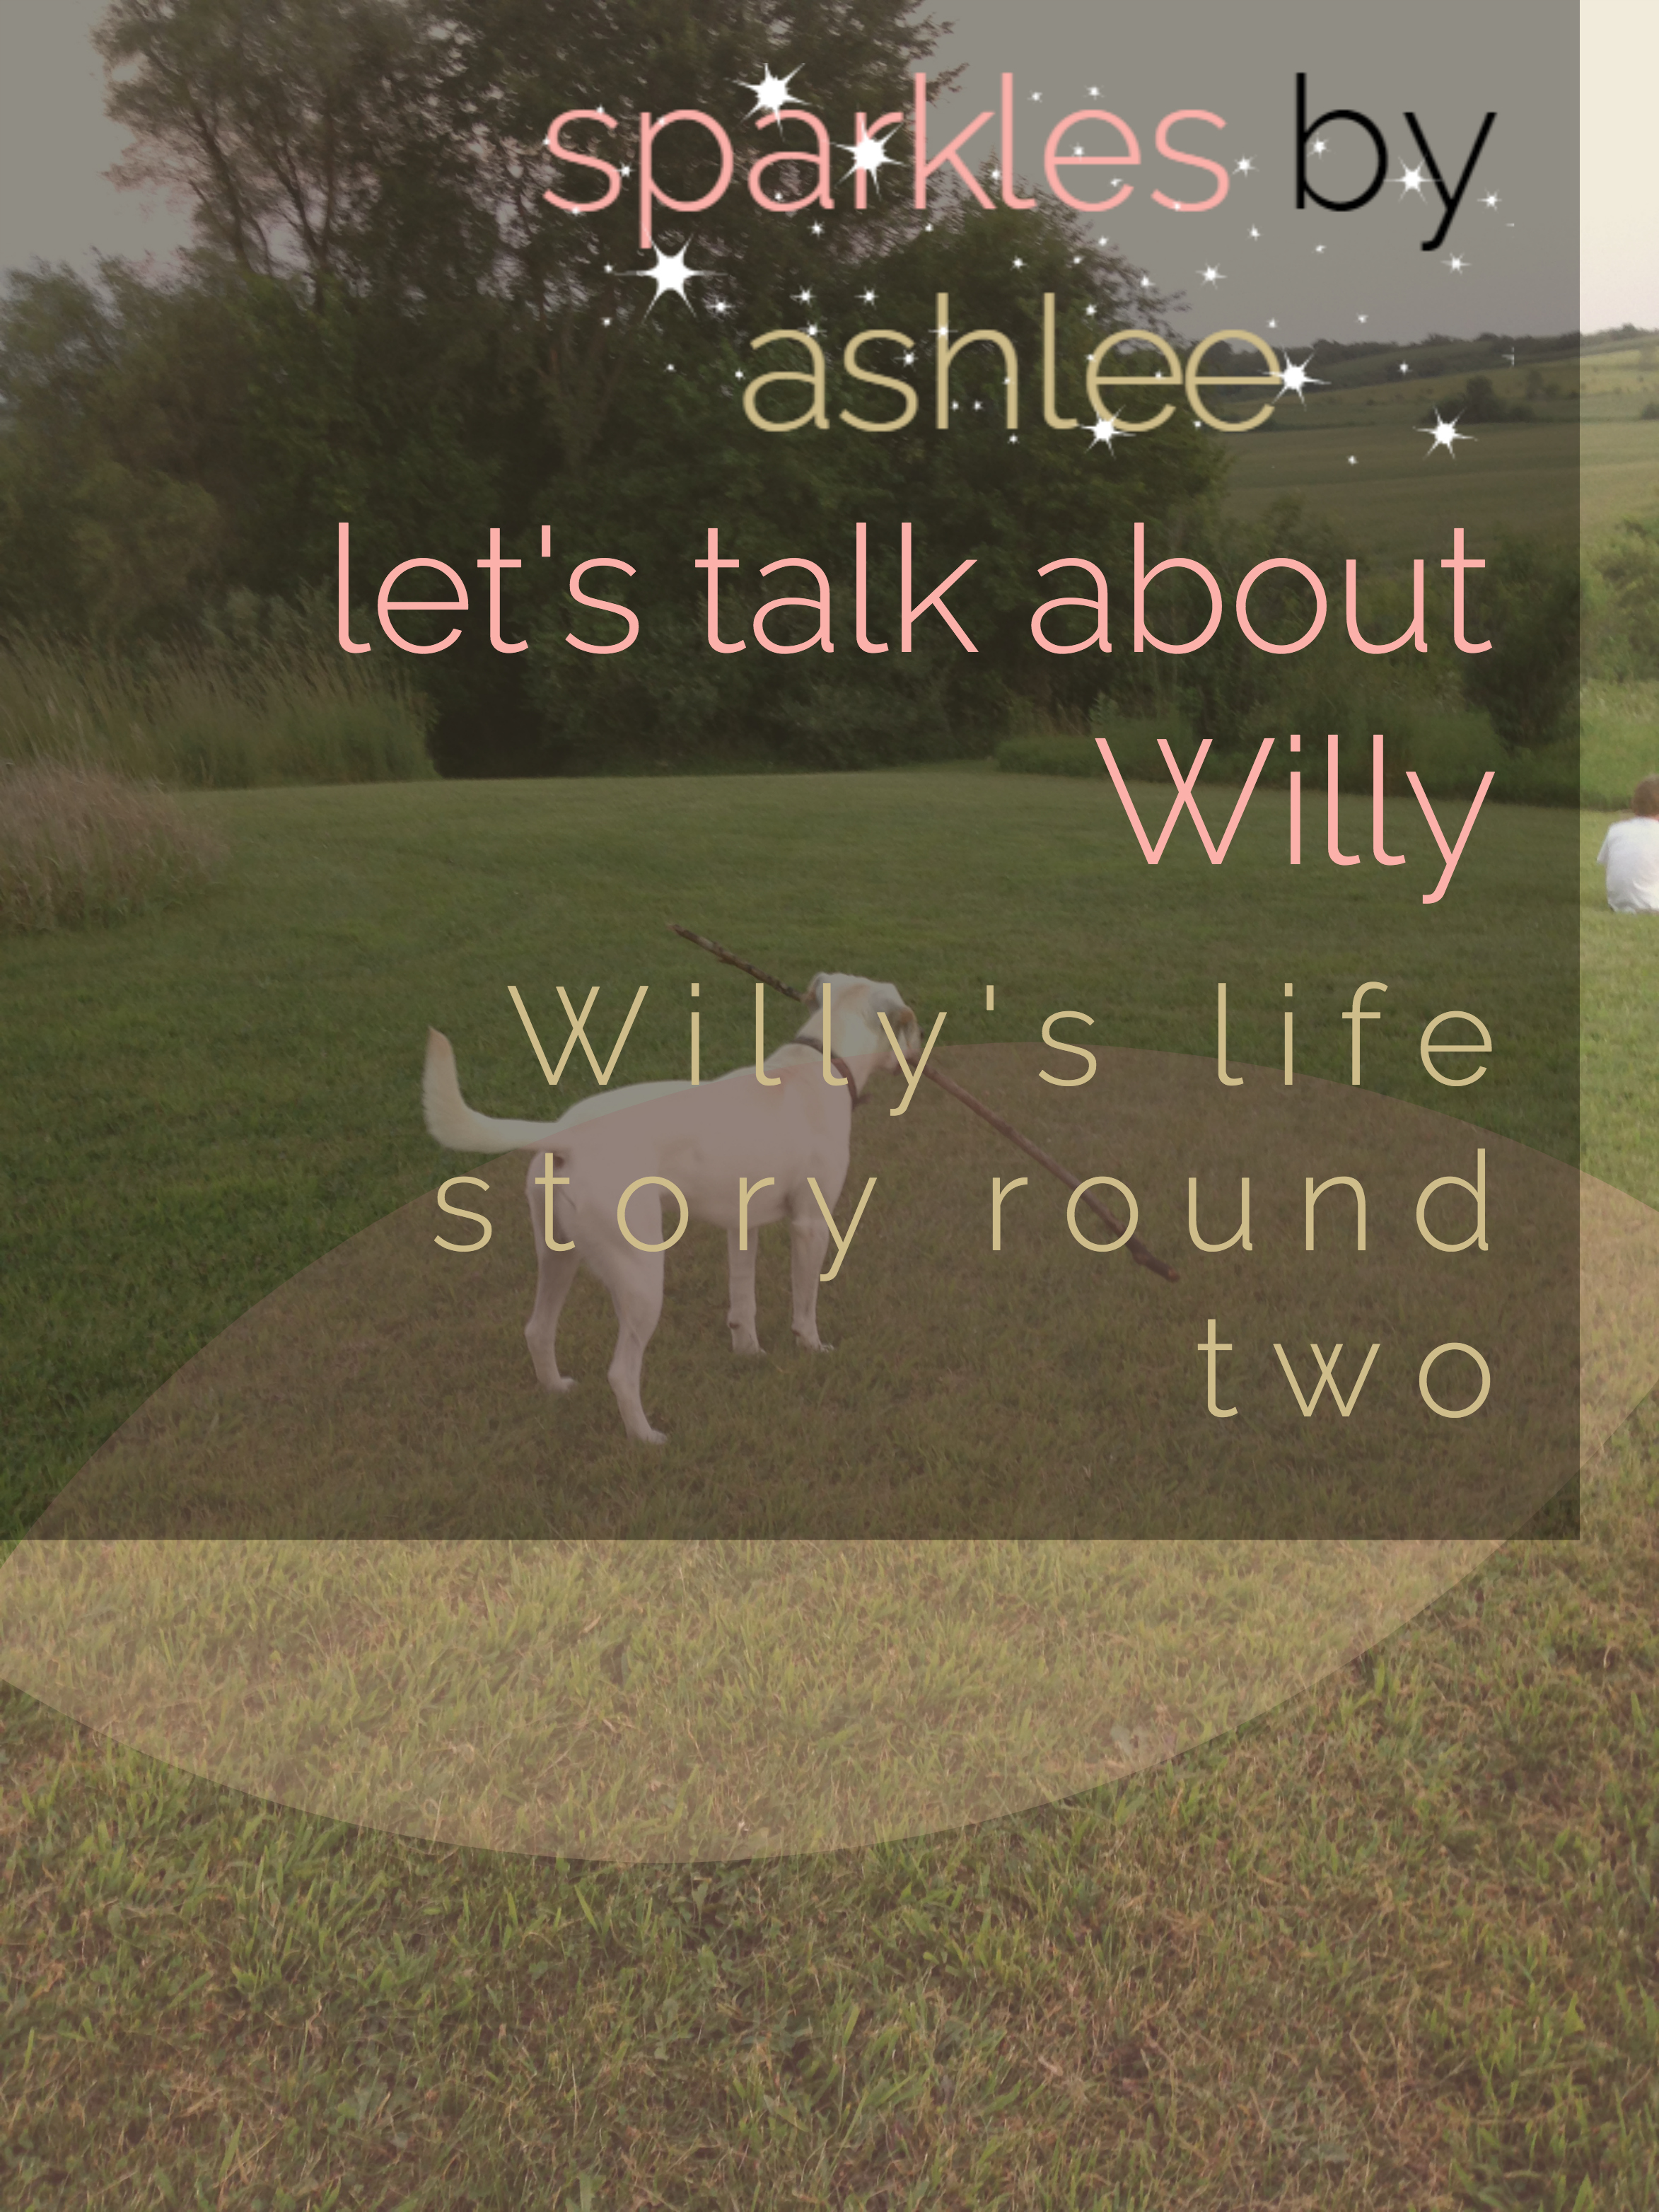 Lets-Talk-About-Willy-Sparkles-by-Ashlee.jpg